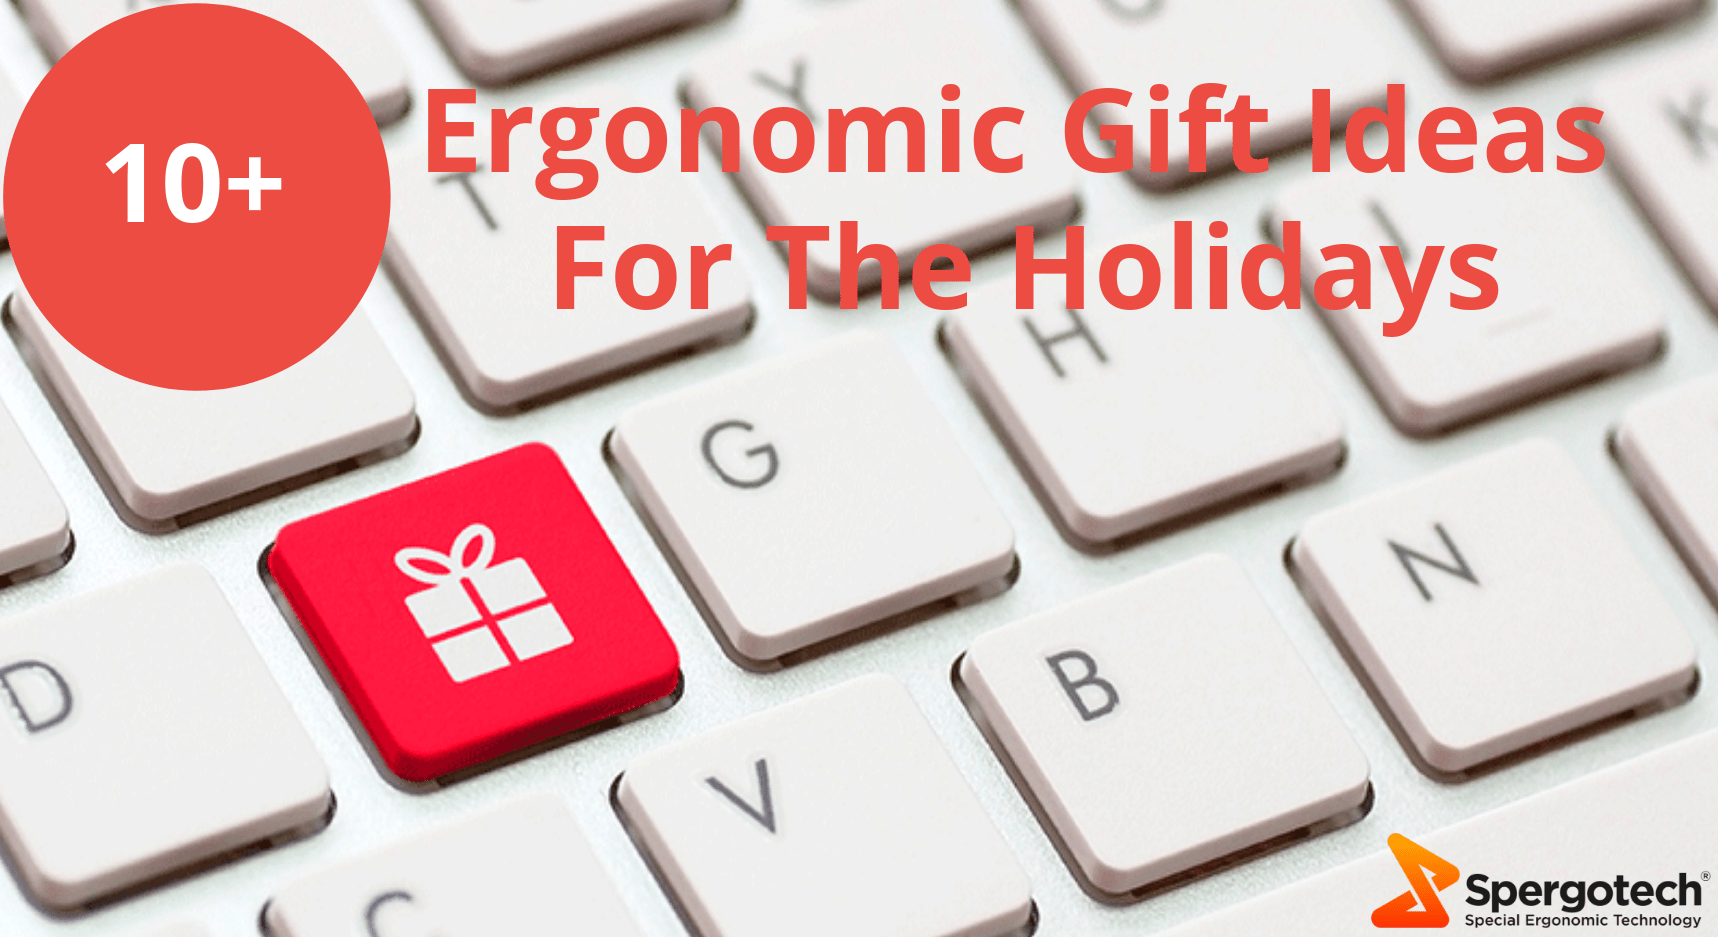 10+ Best Ergonomic Gift Ideas For The Holidays - Spergotech Product Reviews